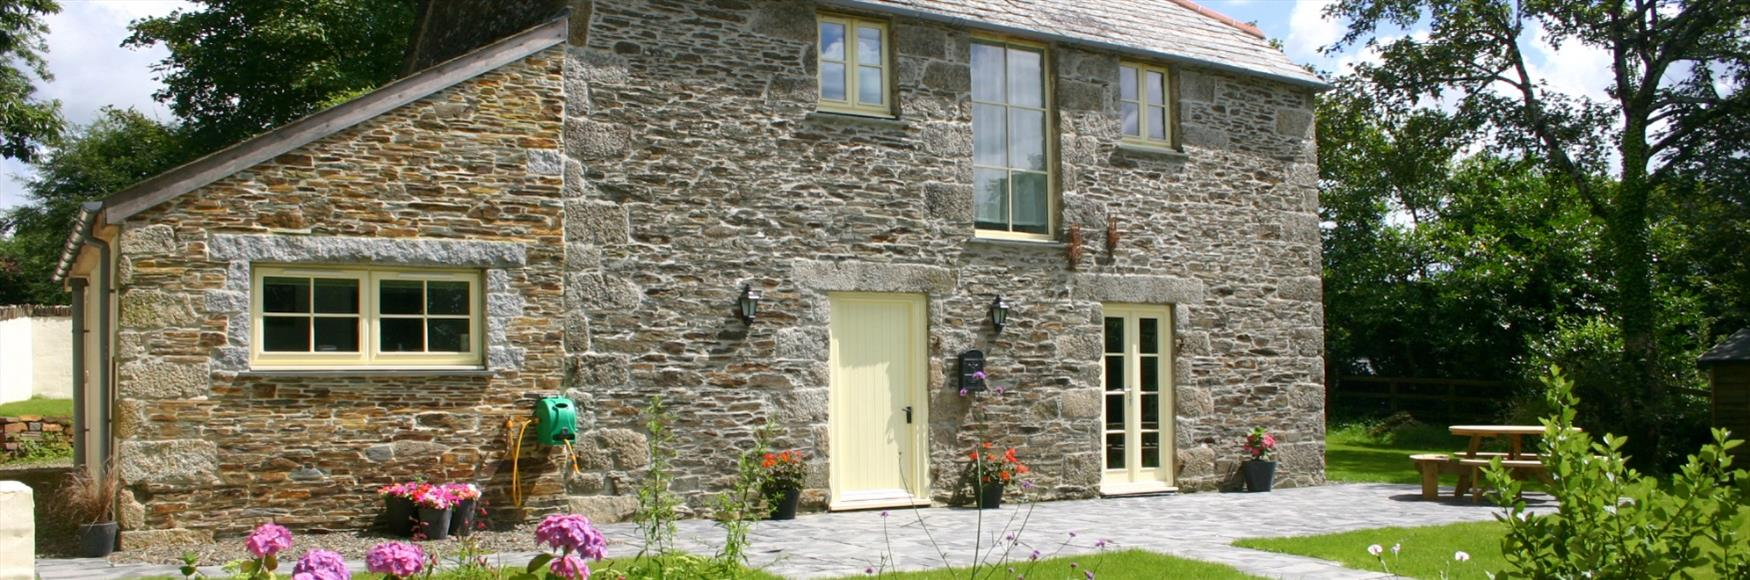 cornwall beautiful rural west cottage beautifully restored in farm cottages lets holiday garlidna